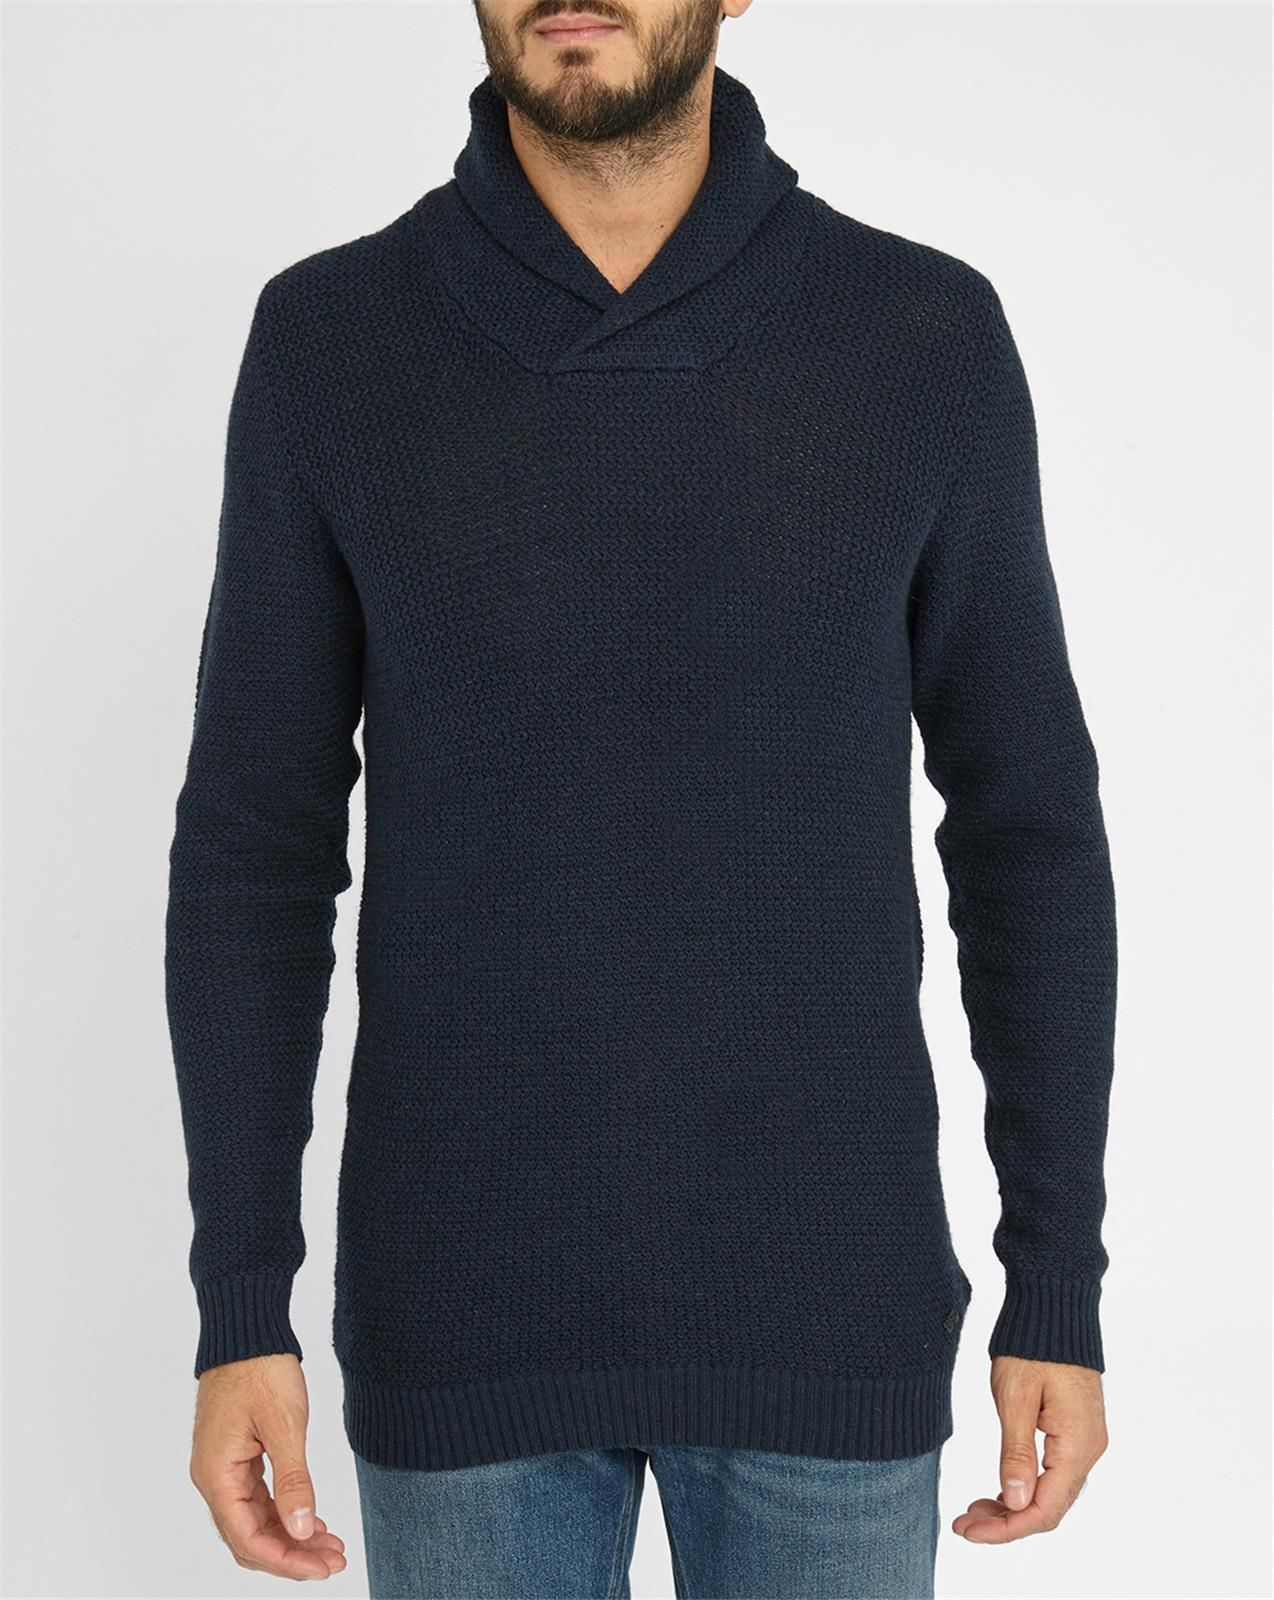 Shop for men's Shawl Neck online at Men's Wearhouse. Browse the latest Sweaters styles & selection for men from top brands & designers from the leader in men's apparel. Available in regular sizes and big & tall sizes. Enjoy FREE Shipping on orders over $99+!